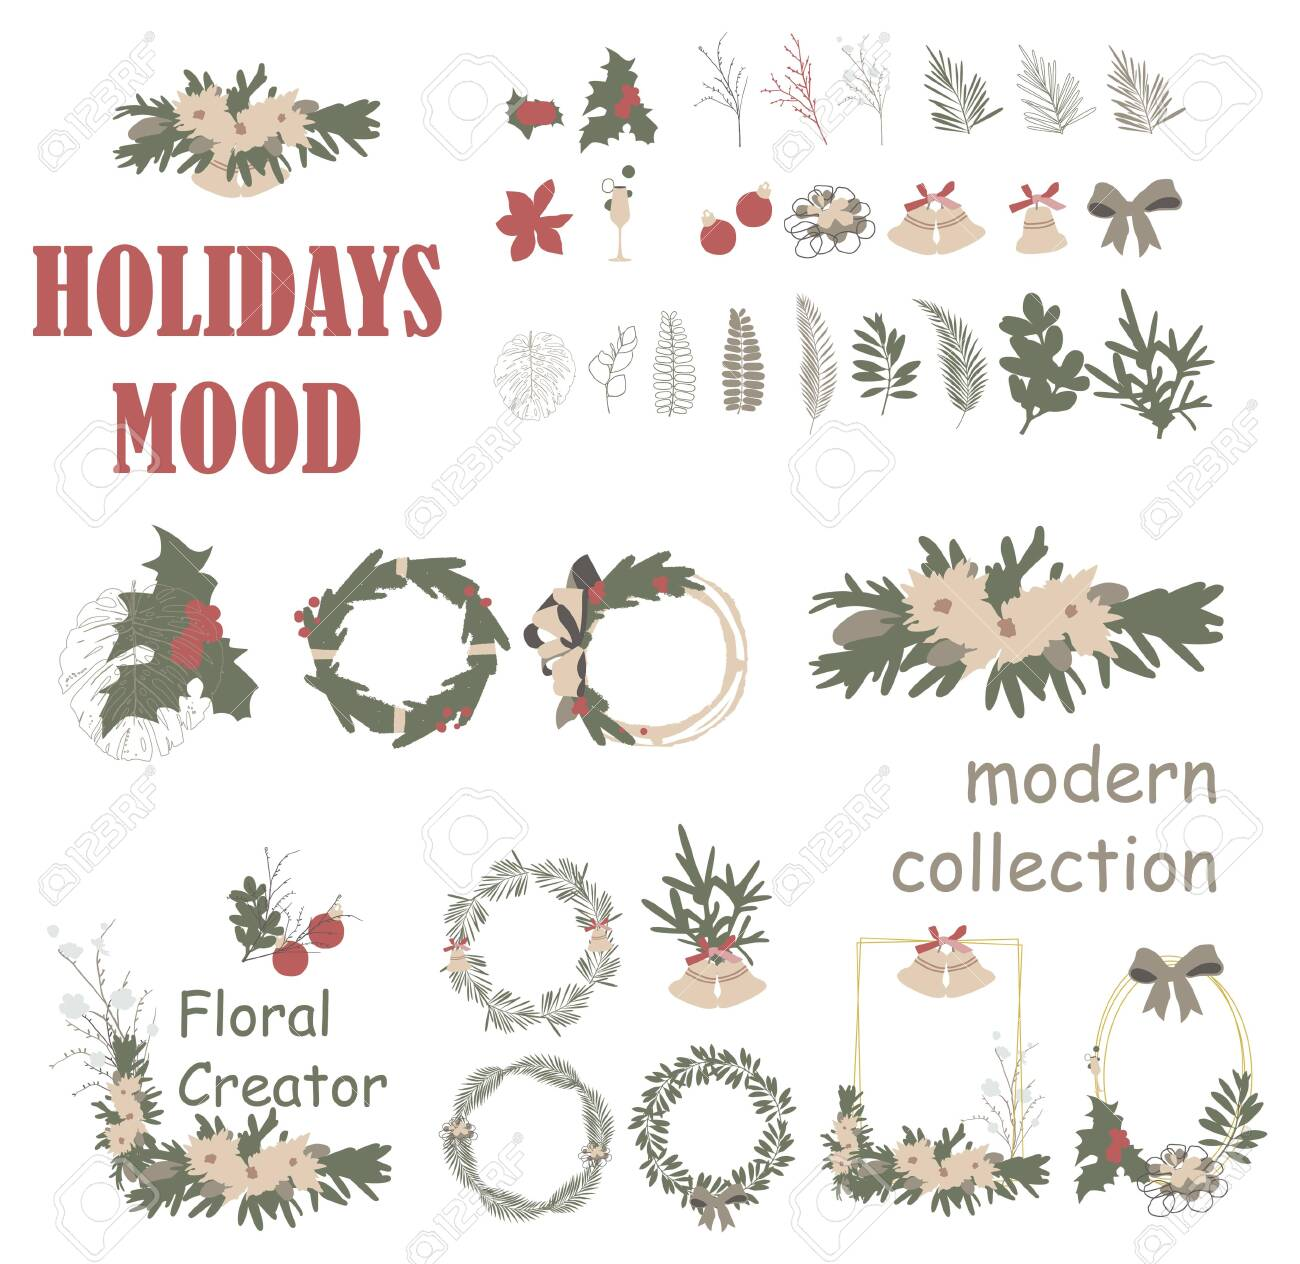 Christmas Wreath 2020 Clipart Christmas Wreath Frame Collection. Modern Illustration For